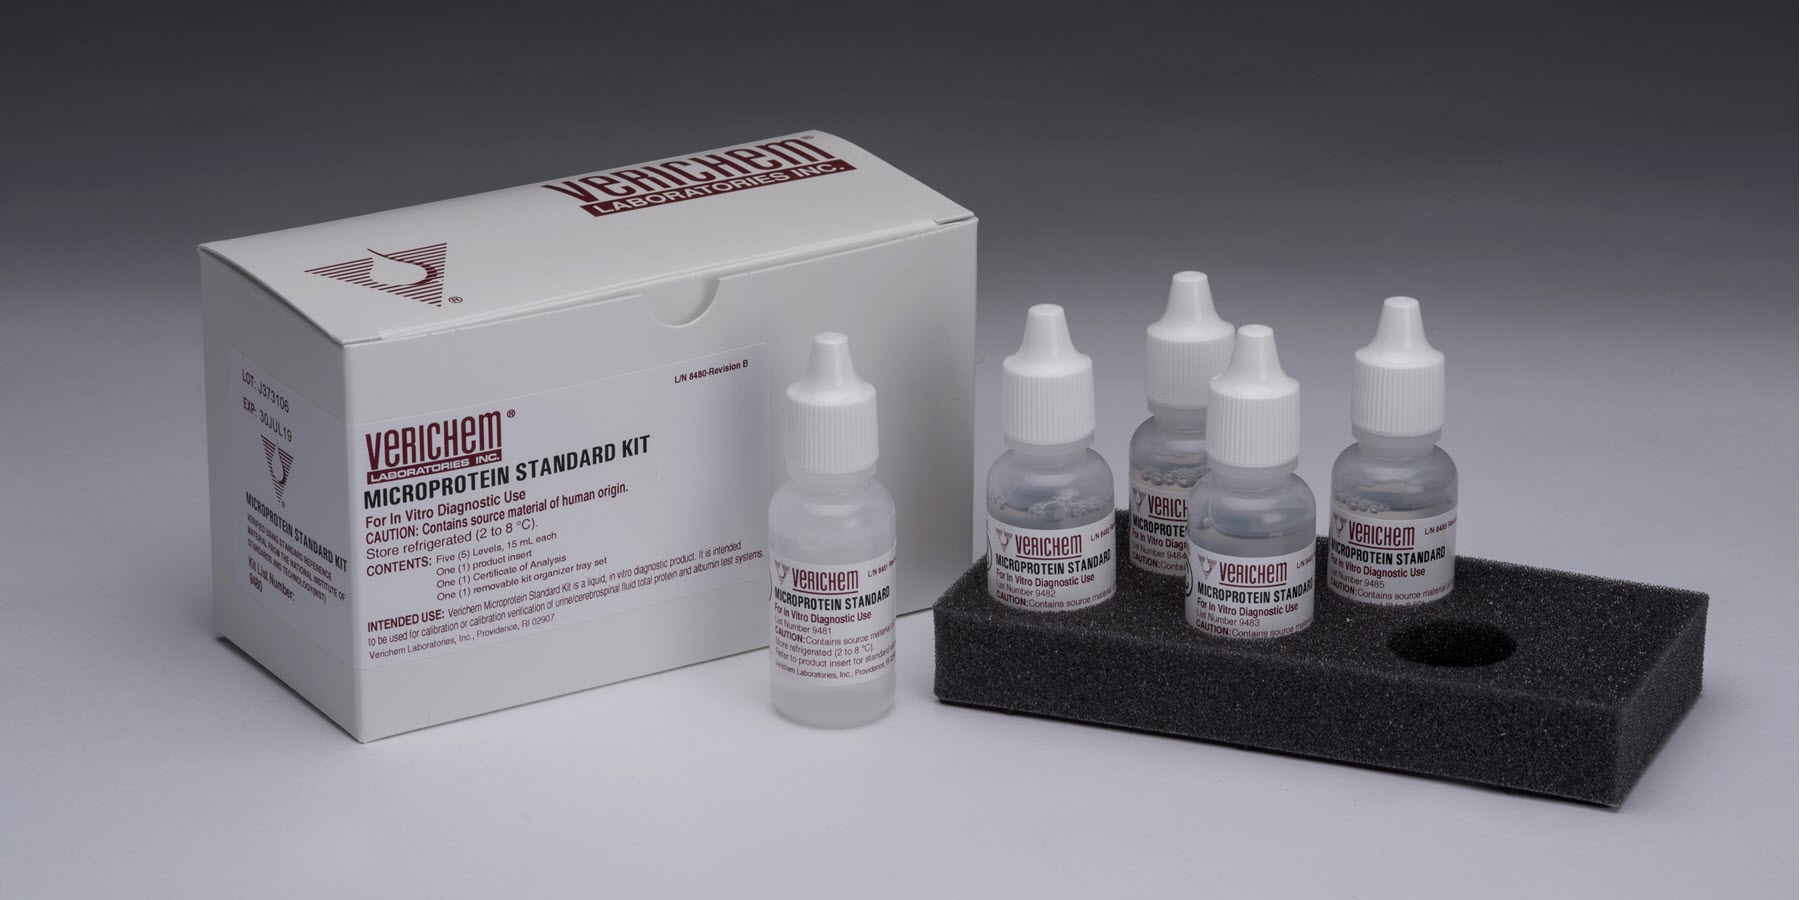 Liquid Stable and Ready to Use Microprotein Standard Kit Offered from Verichem Laboratories